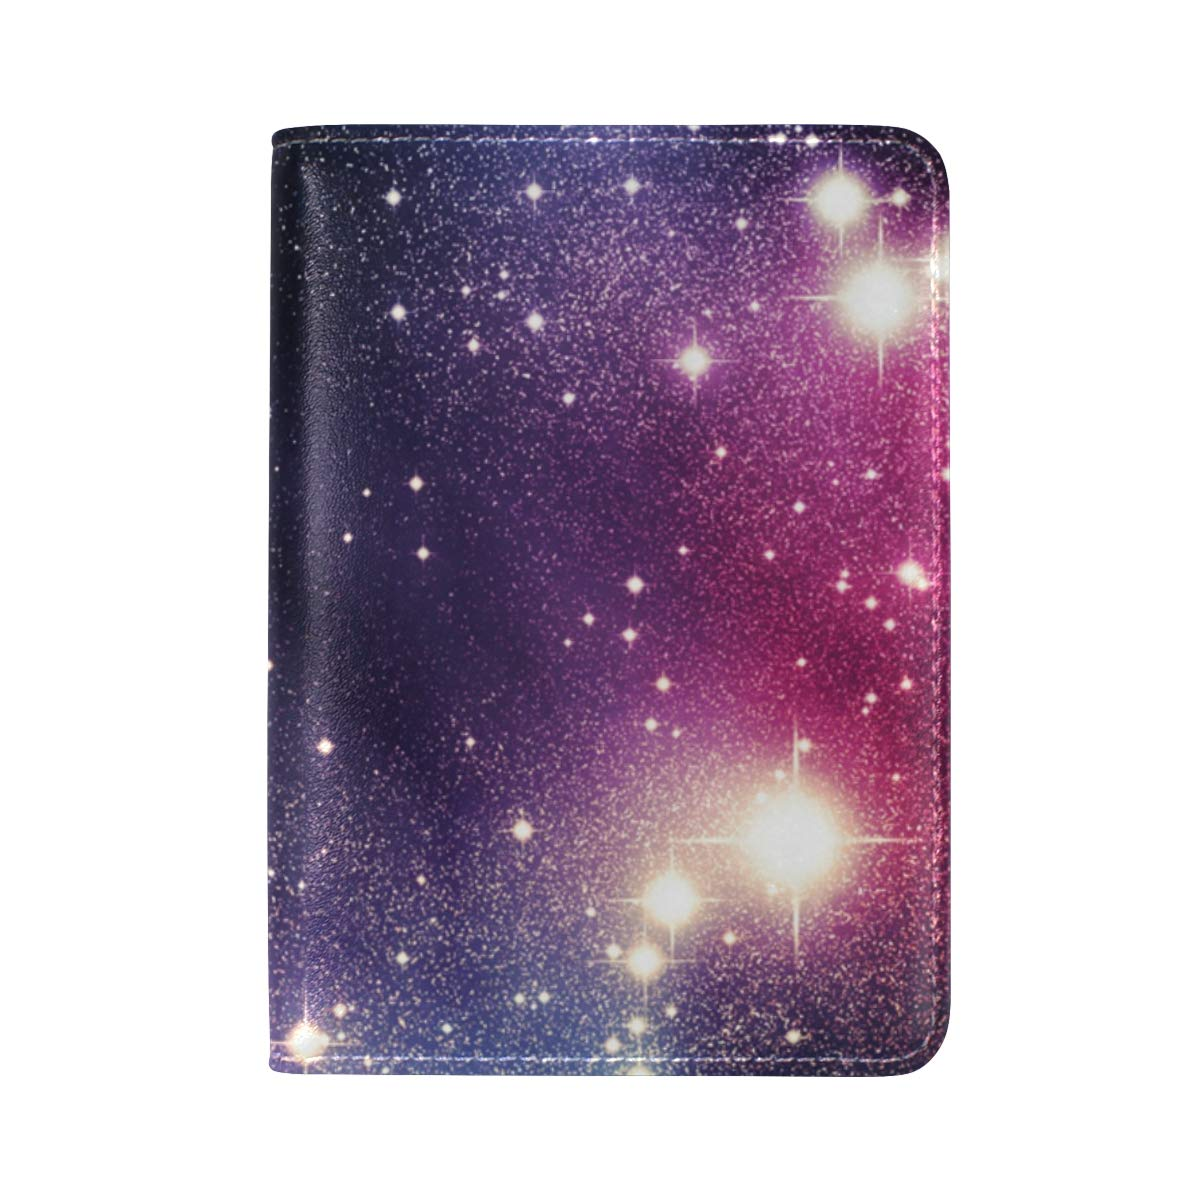 Starry Night Sky Colorful Universe One Pocket Leather Passport Holder Cover Case Protector for Men Women Travel